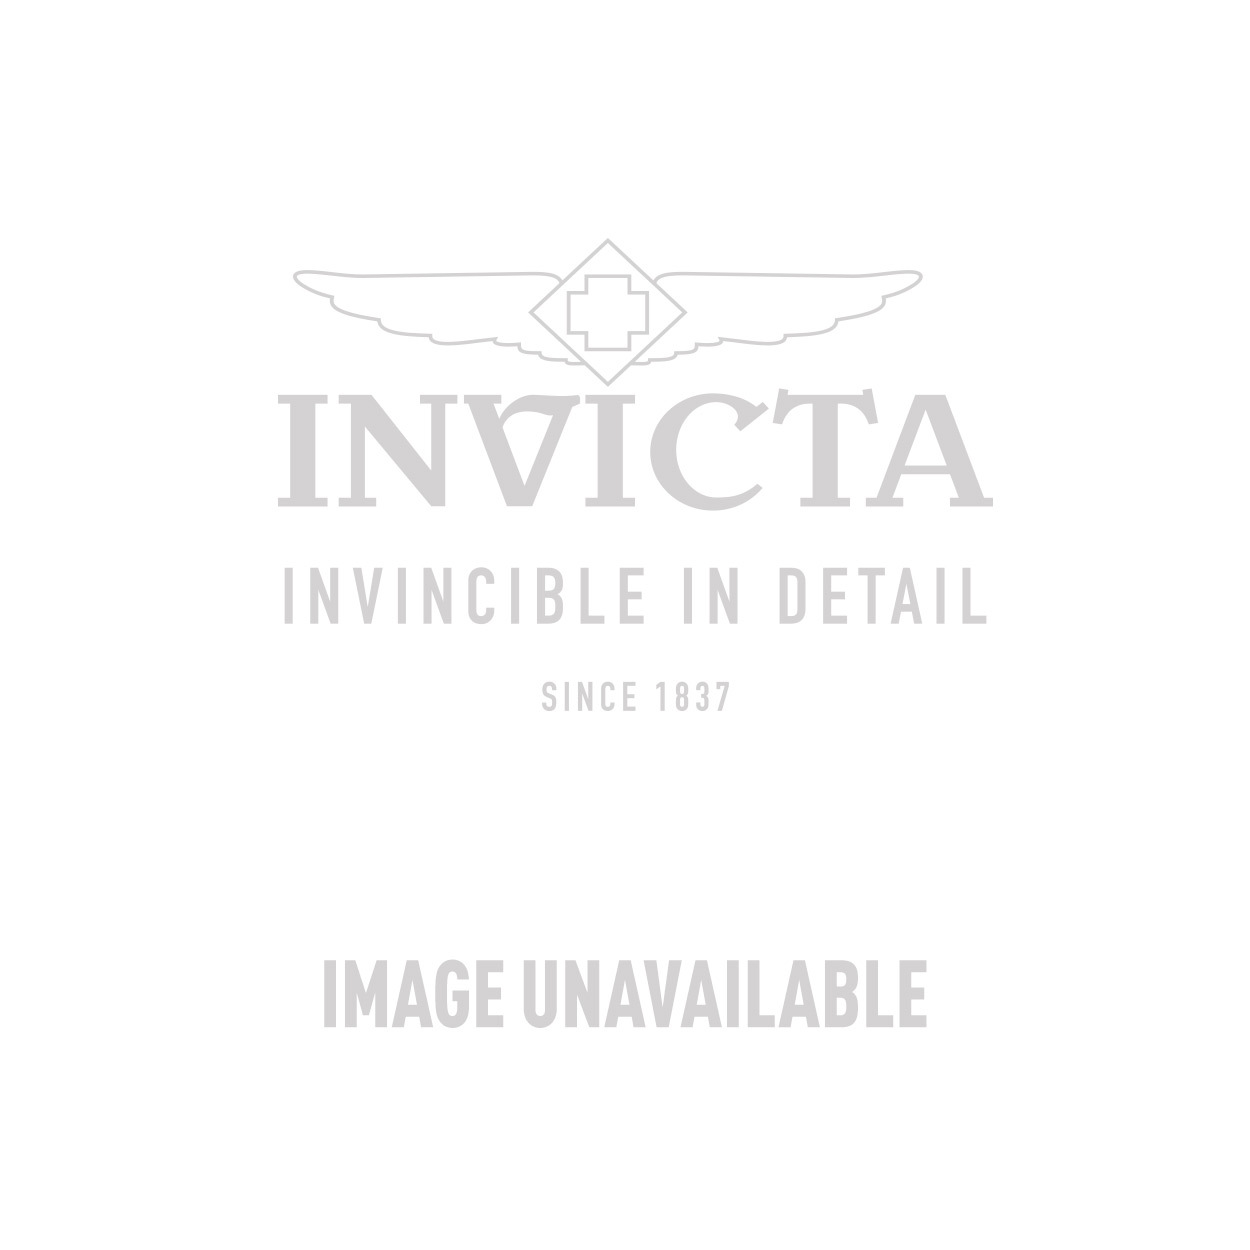 Invicta S1 Rally Quartz Watch - Rose Gold case with Rose Gold, Brown tone Leather band - Model 90104